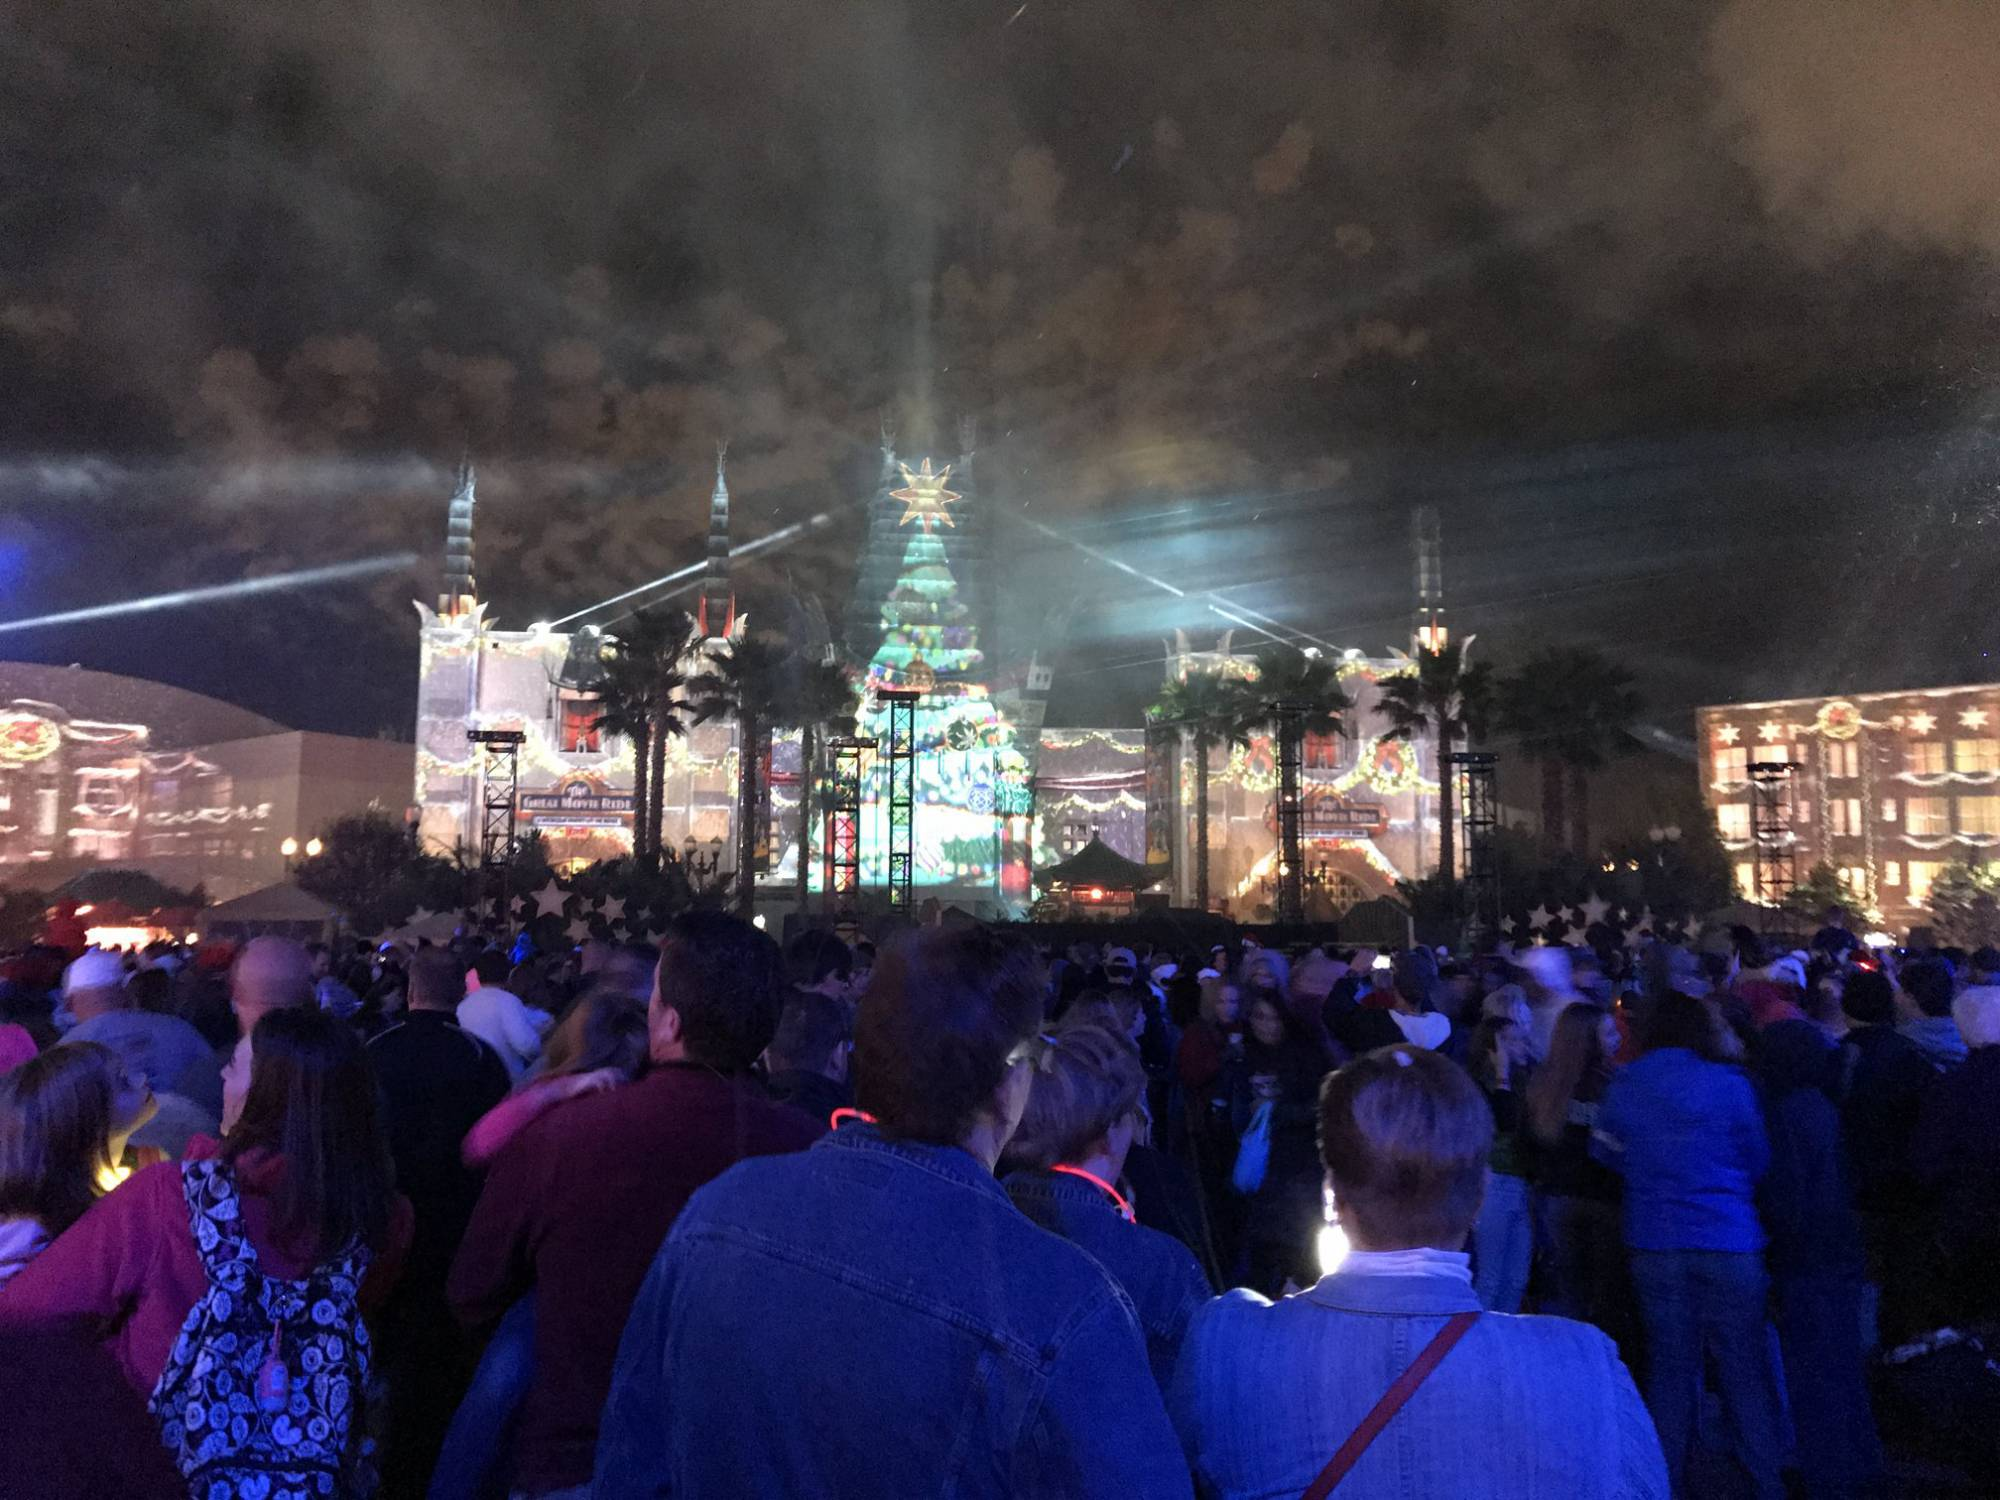 A review of the Jingle Bell, Jingle BAM! Holiday Dessert Party |PassPorter.com